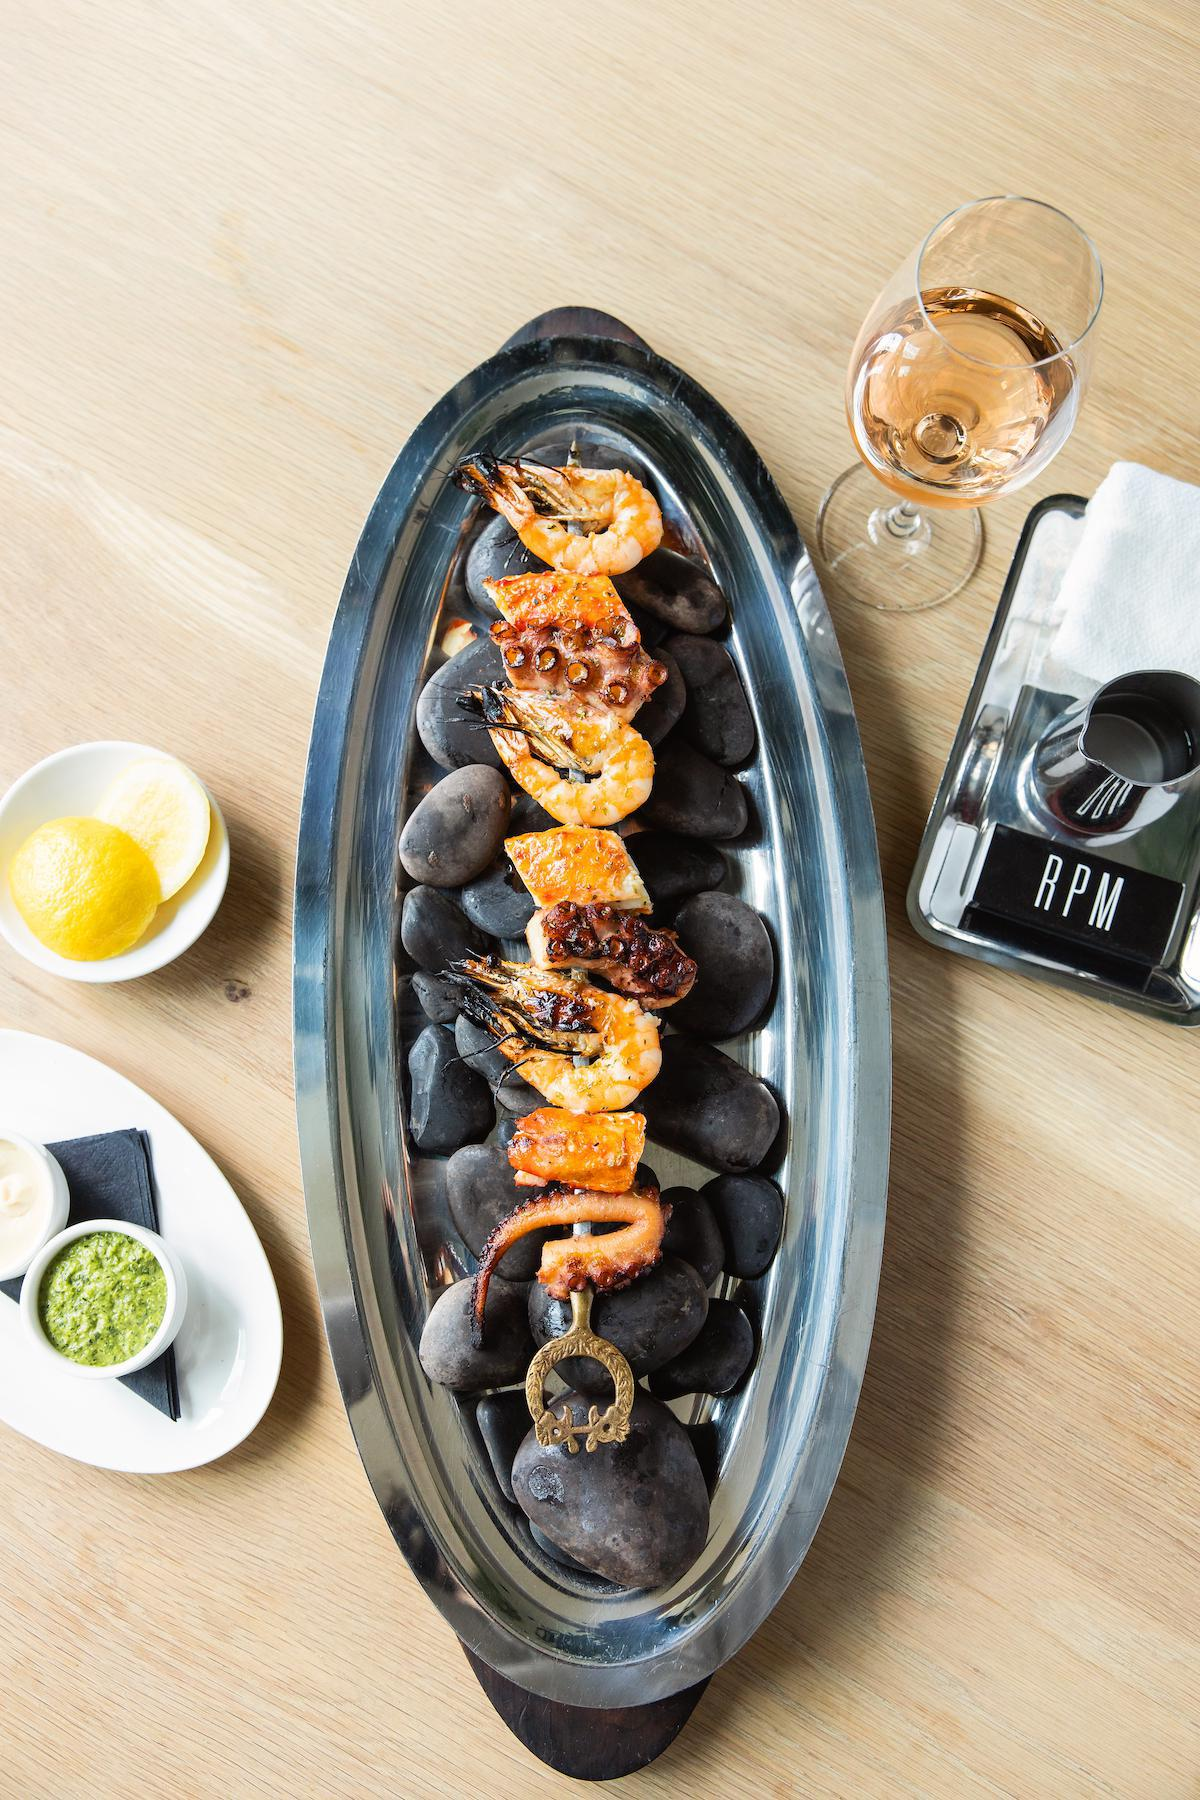 RPM Seafood Mixed Grill